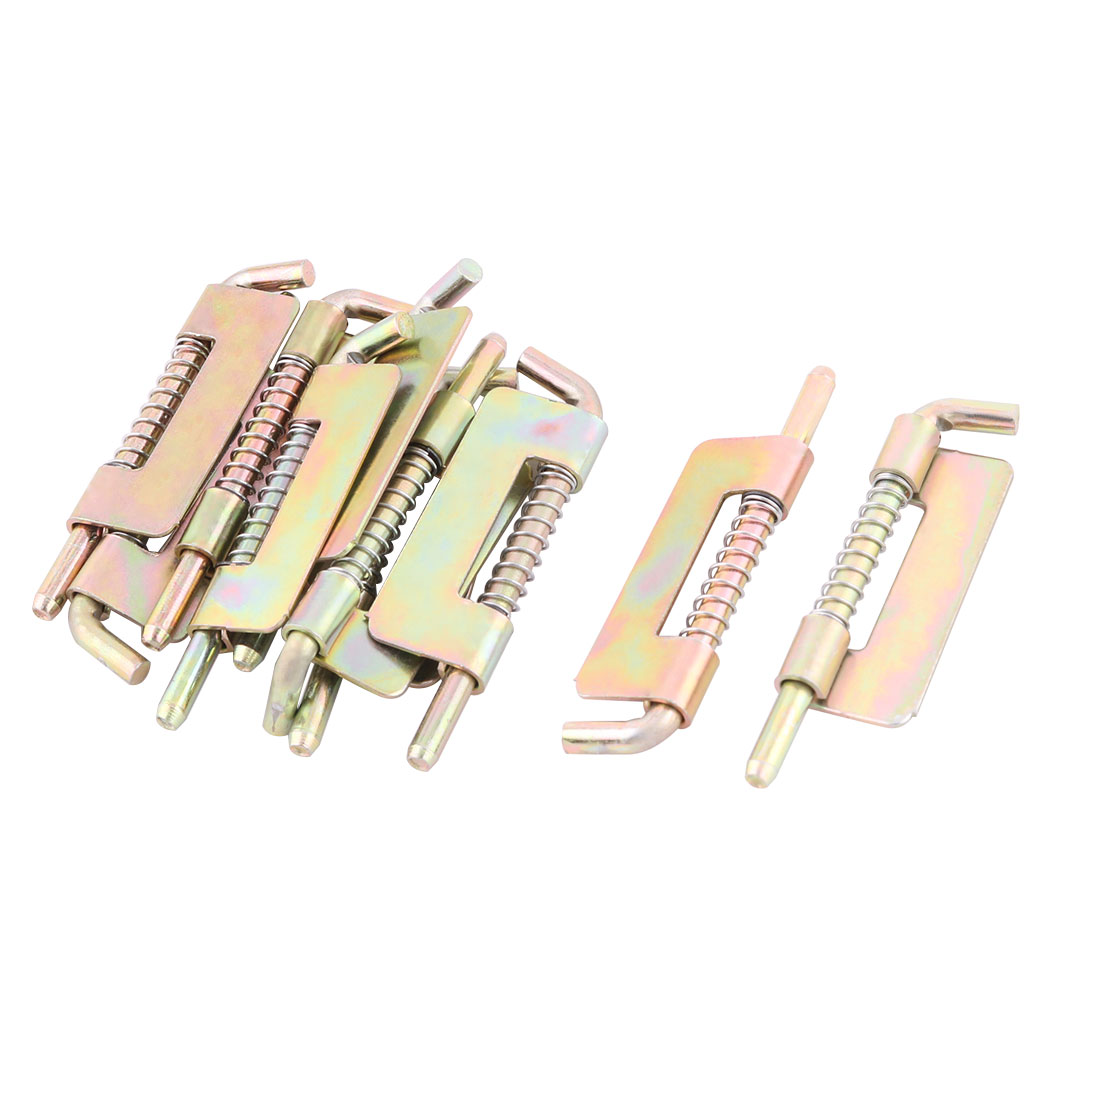 Hotel Stainless Steel Furniture Spring Latch Colorful 2.9 Inch Length 10 Pcs